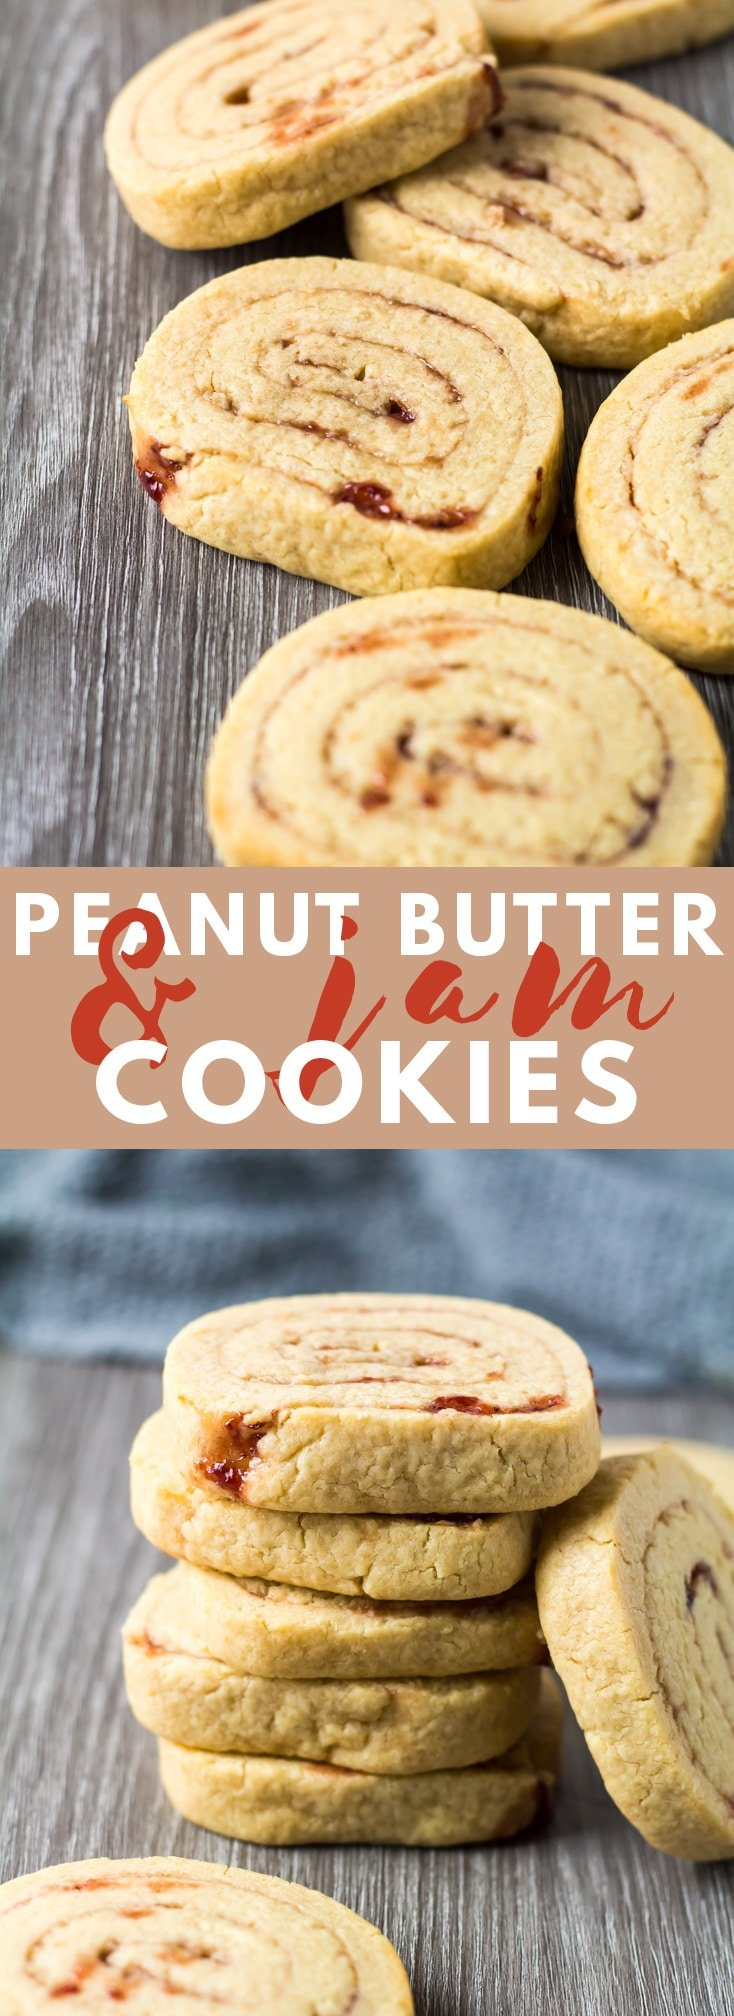 Peanut Butter & Jam Pinwheel Cookies - Deliciously soft and buttery cookies that are loaded with peanut butter, and filled with a raspberry jam swirl!